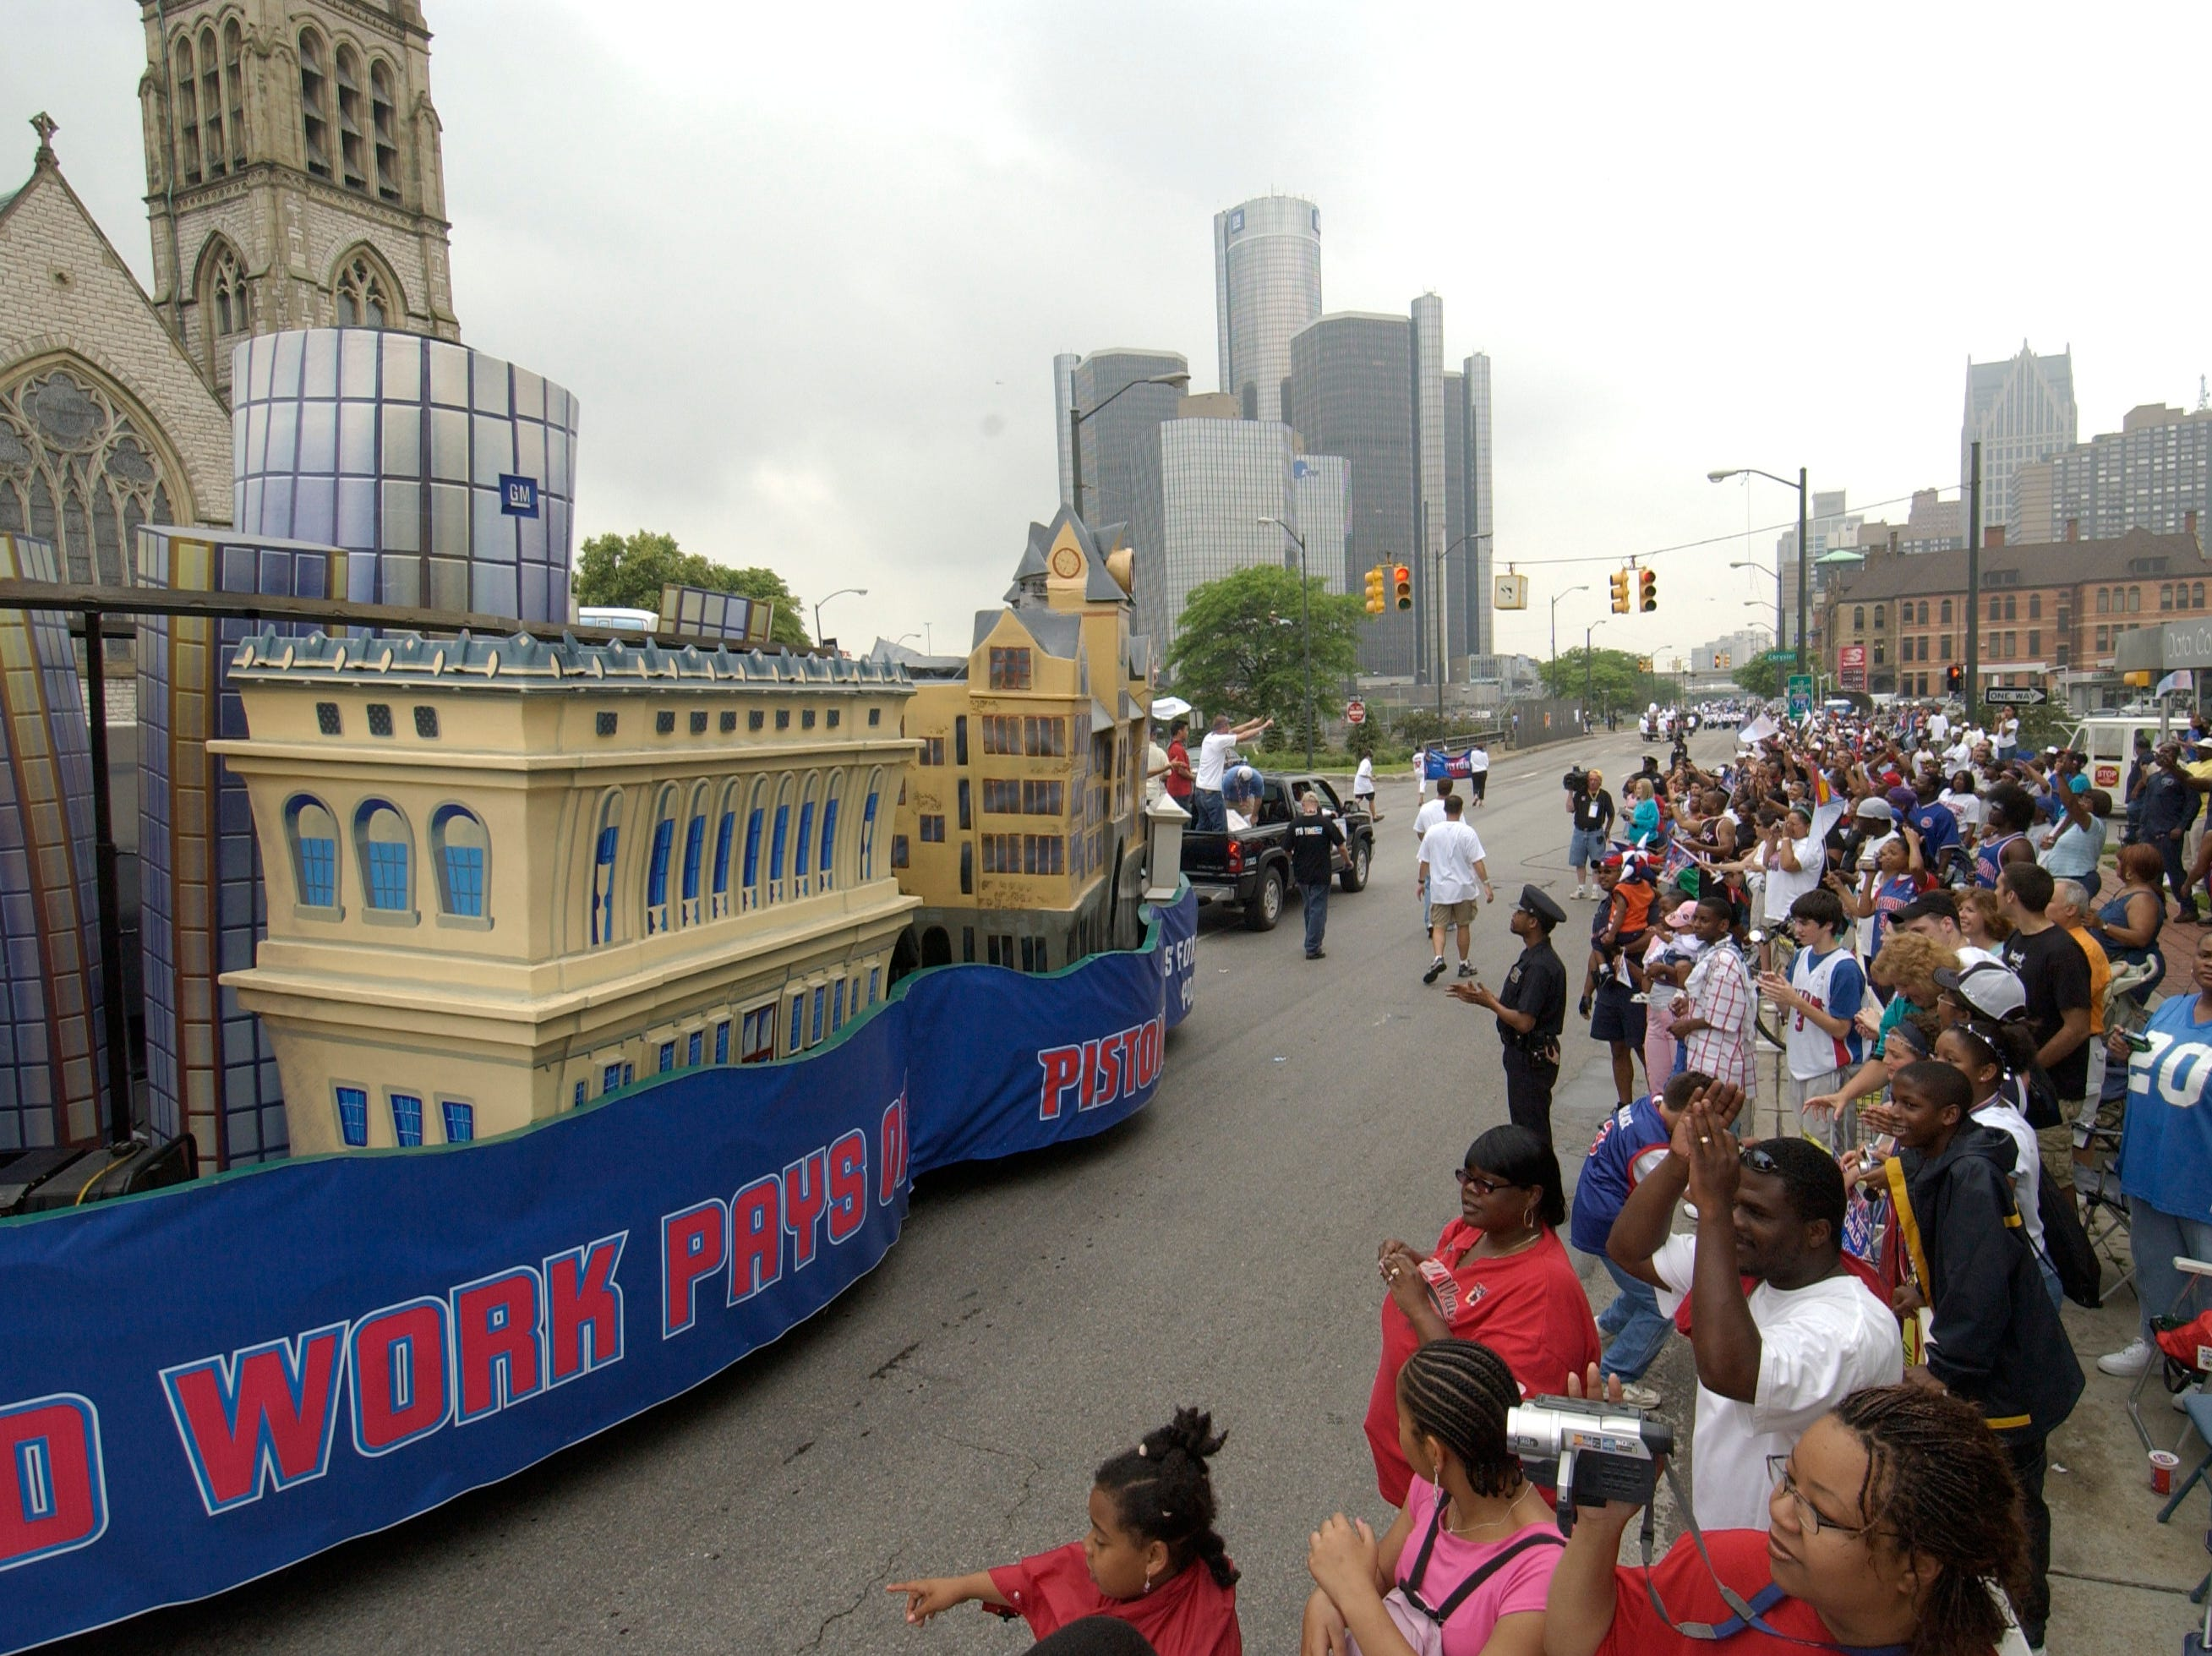 The Detroit Pistons celebrated their NBA championship with a parade down Jefferson Ave.